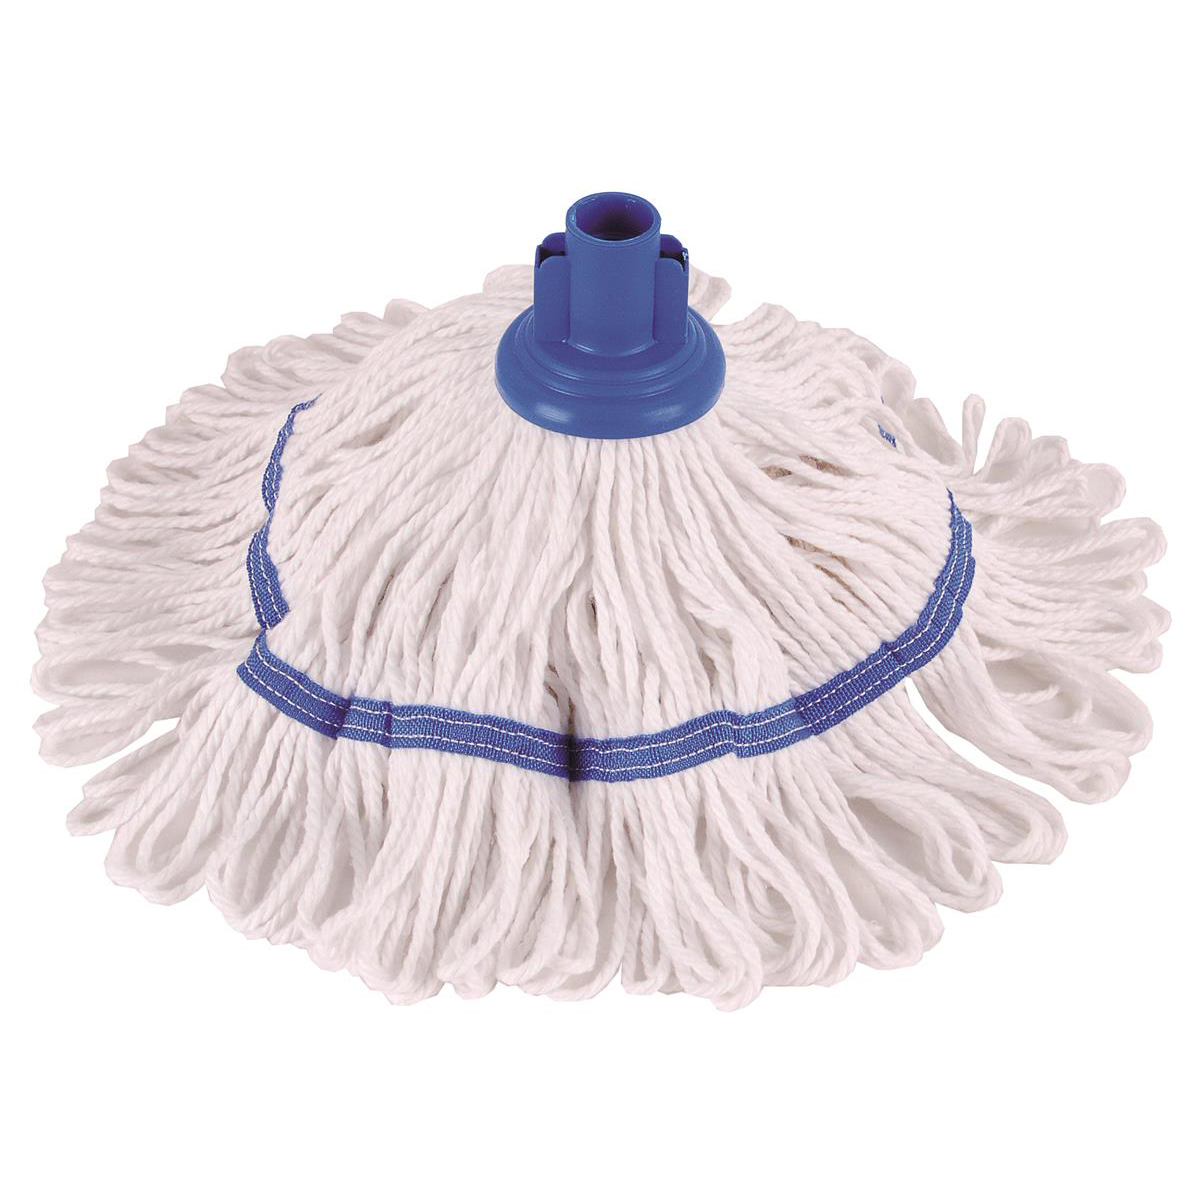 Robert Scott & Sons Hygiemix T1 Socket Cotton & Synthetic Colour-coded Mop 200g Blue Ref 103062BLUE